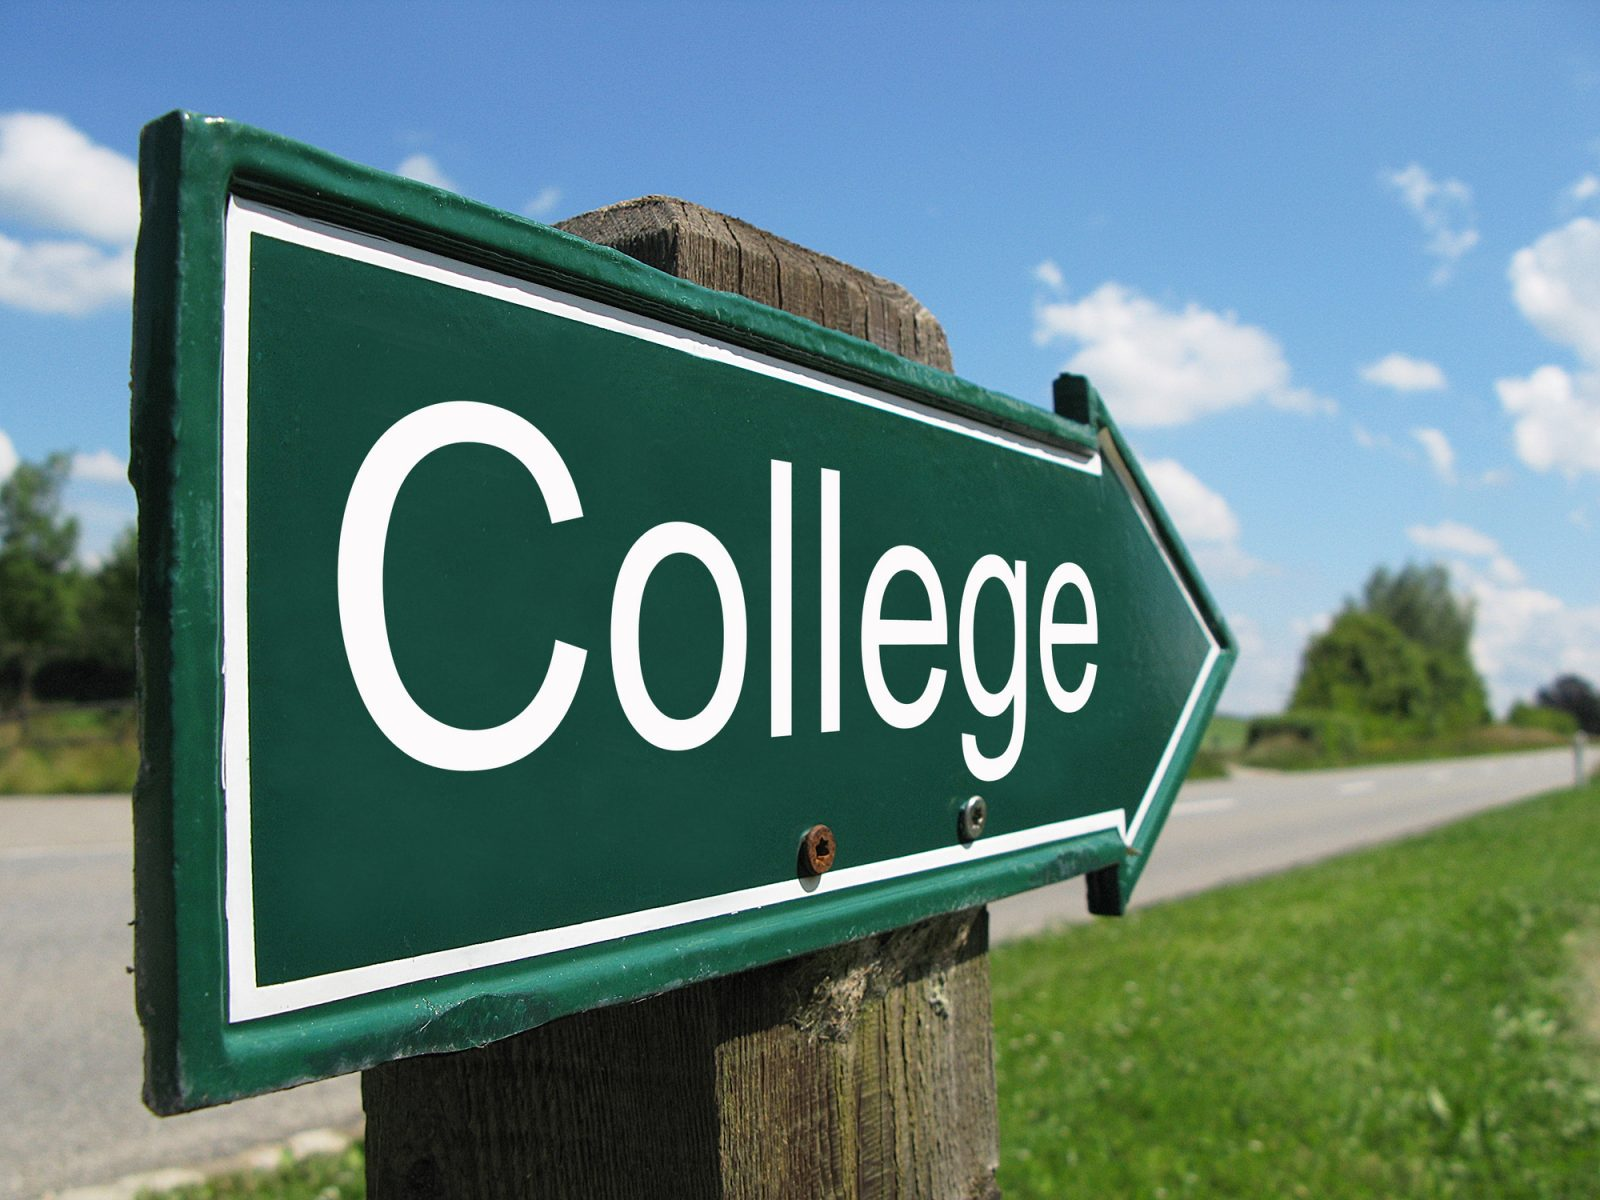 Where should you go to college? Some guidelines to point you in the right direction.